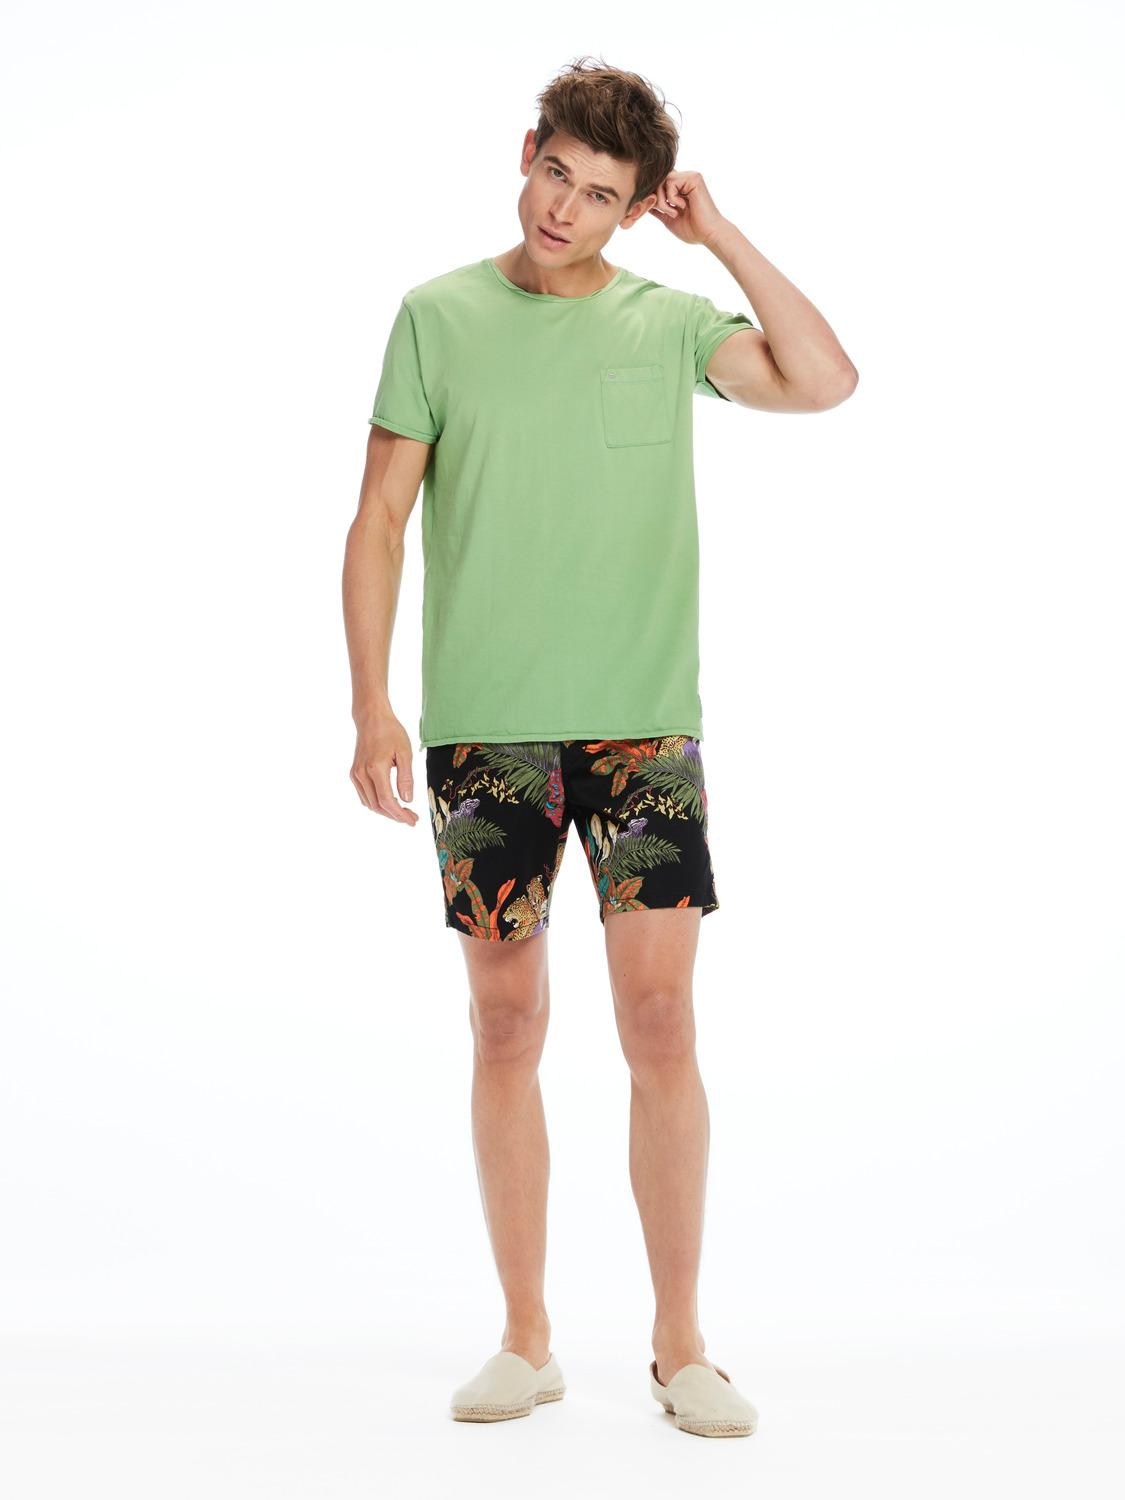 lyst scotch soda garment dyed tee in green for men. Black Bedroom Furniture Sets. Home Design Ideas